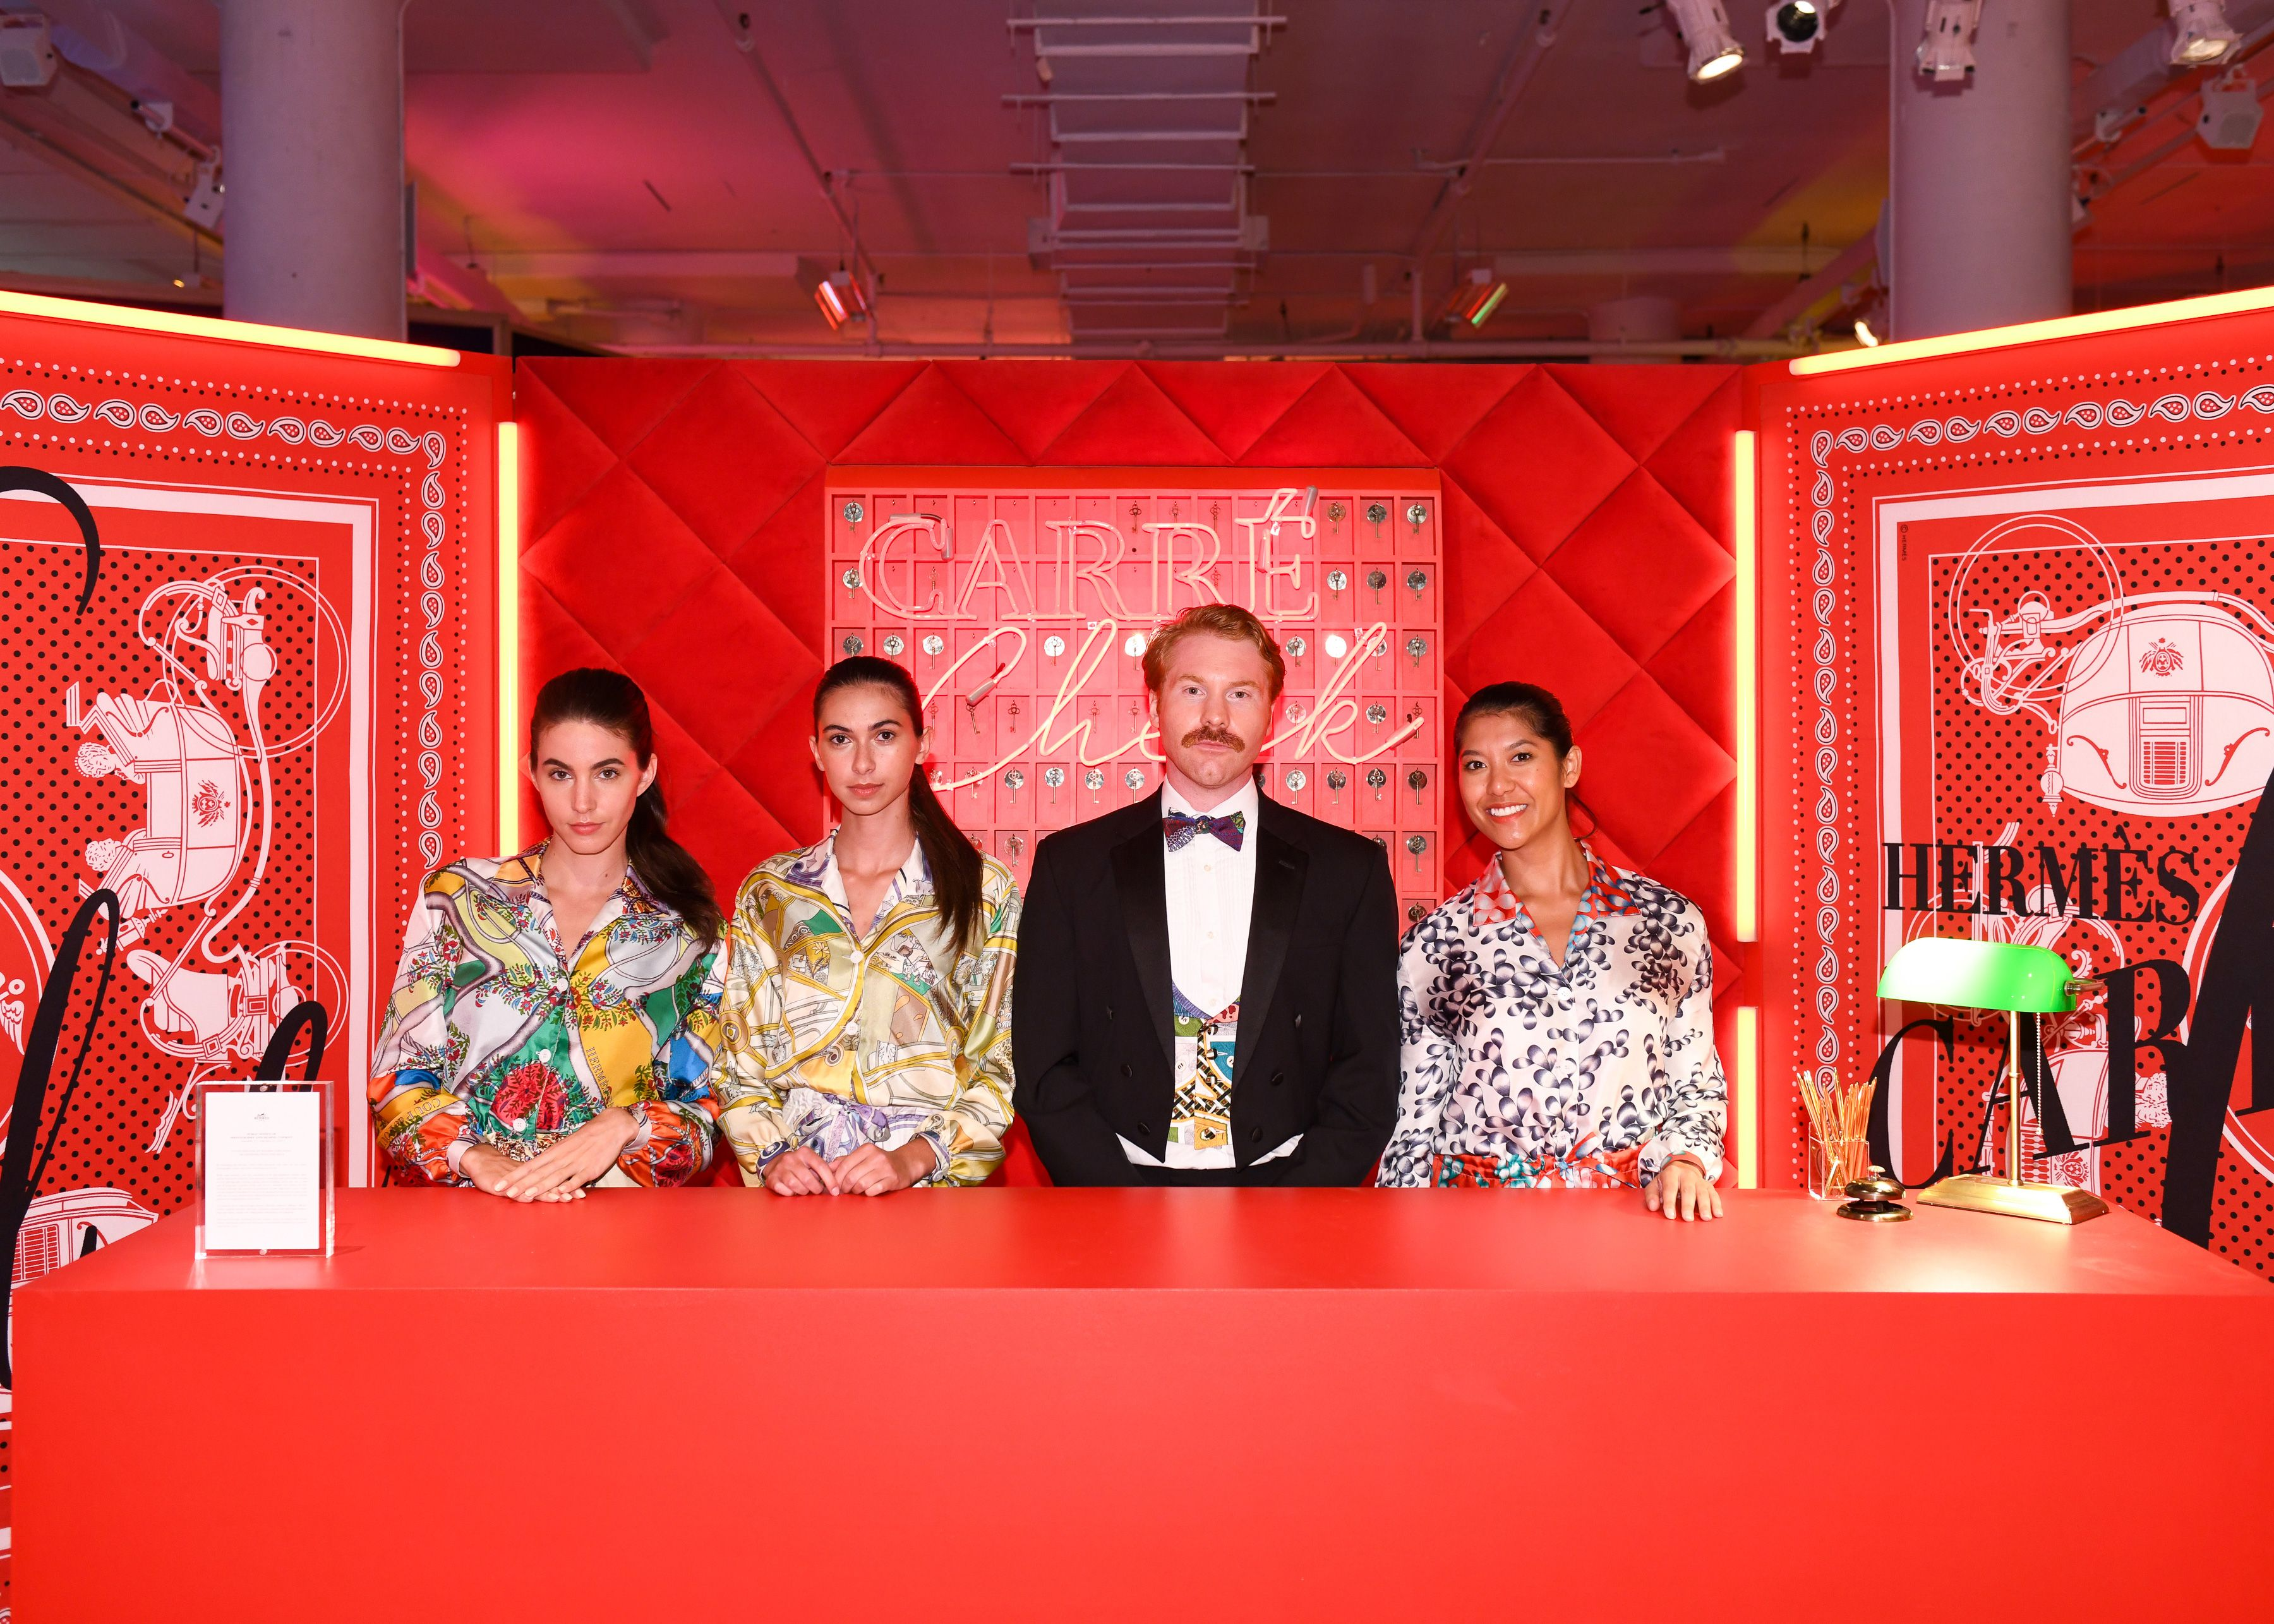 Image result for hermes carre club pop up nyc